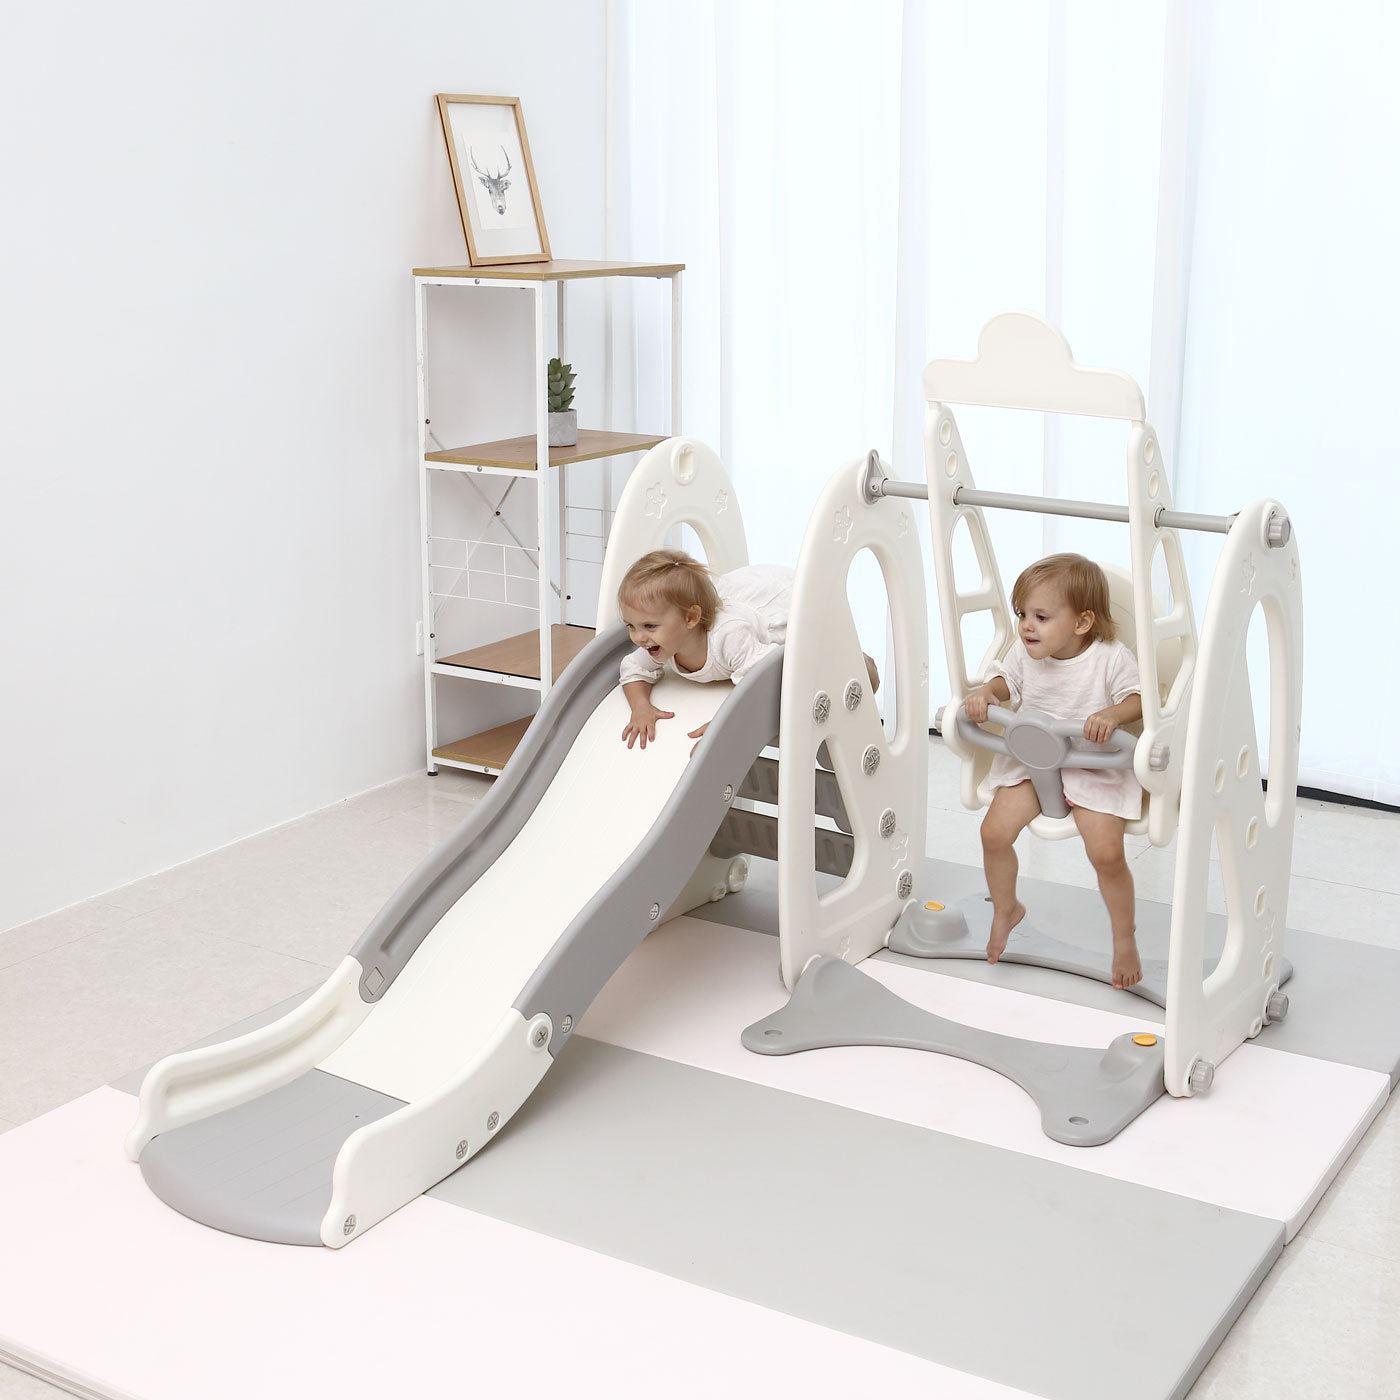 4 in 1 Toddler Slide and Swing Set with Basketball Hoop - White/Grey